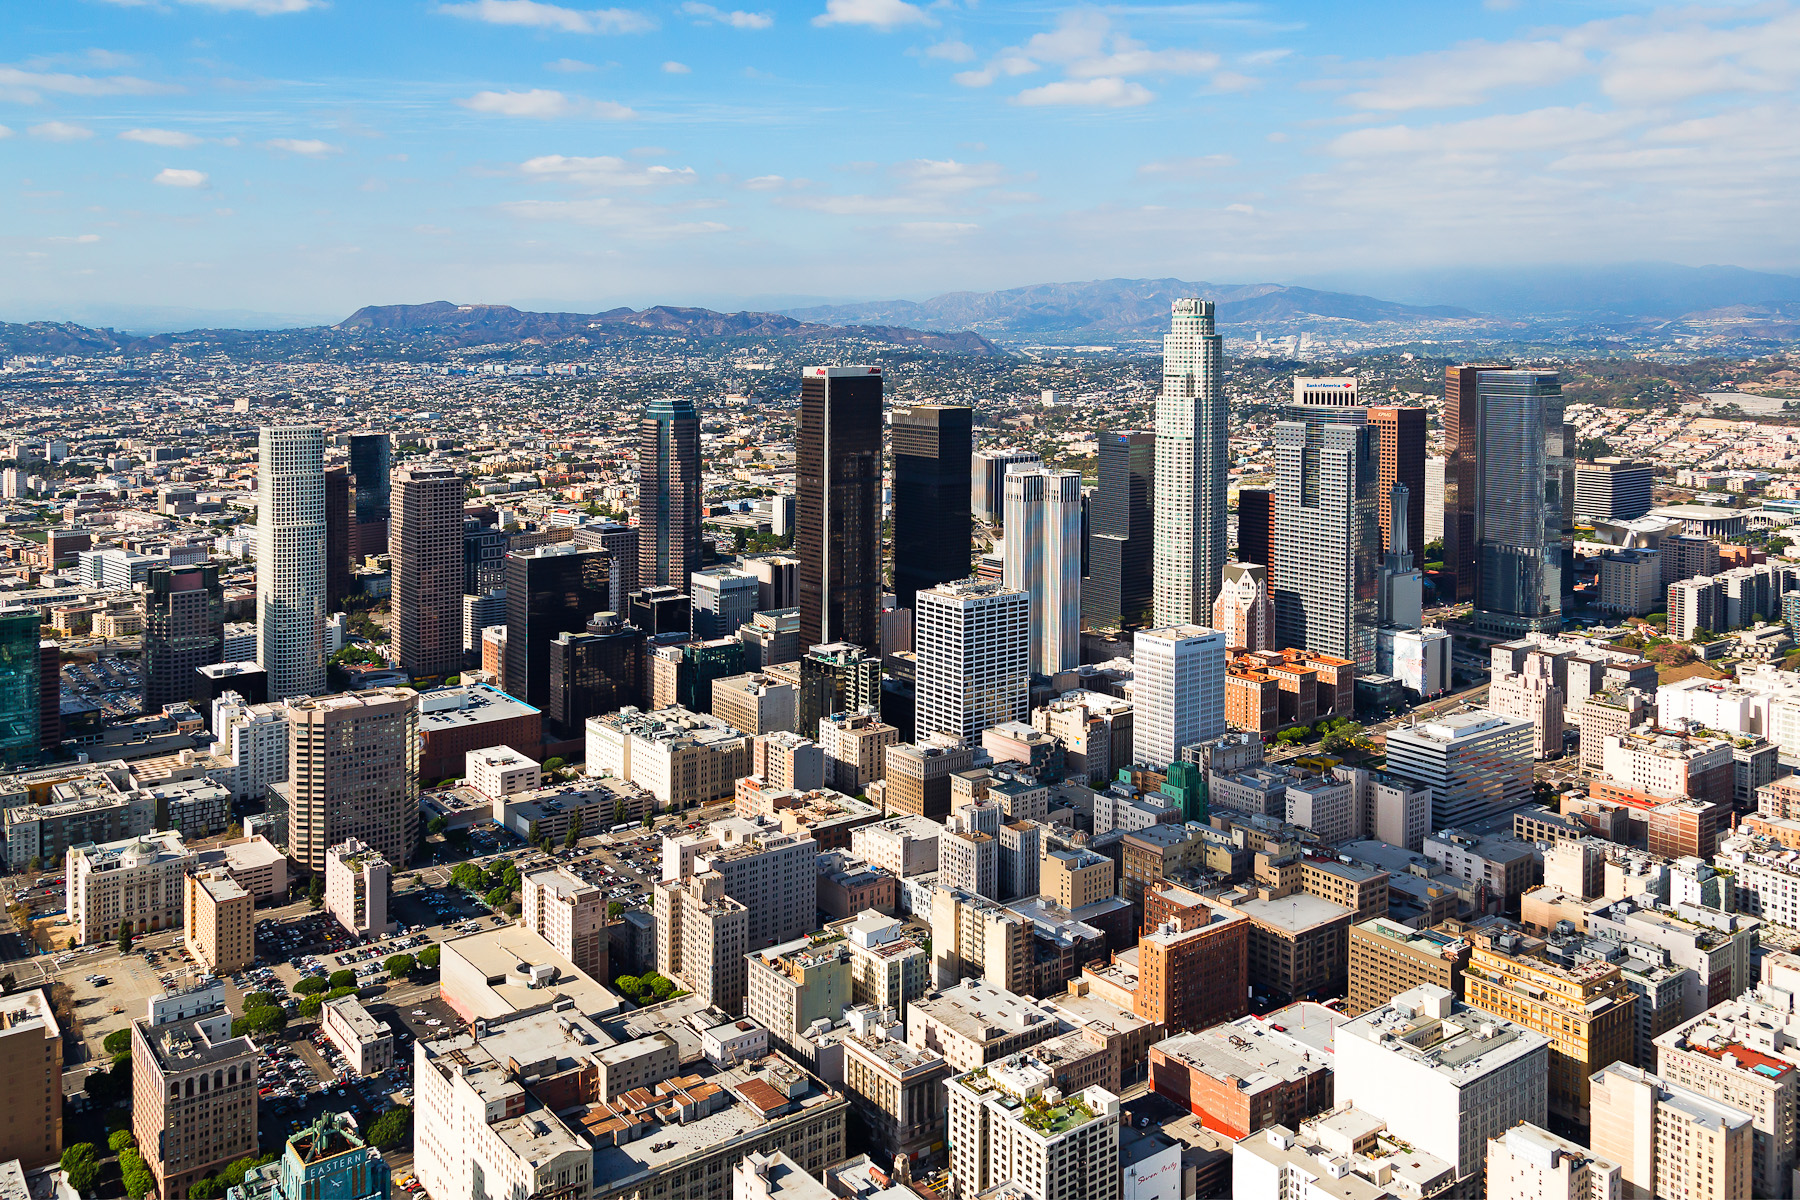 Los Angeles Aerial Photography